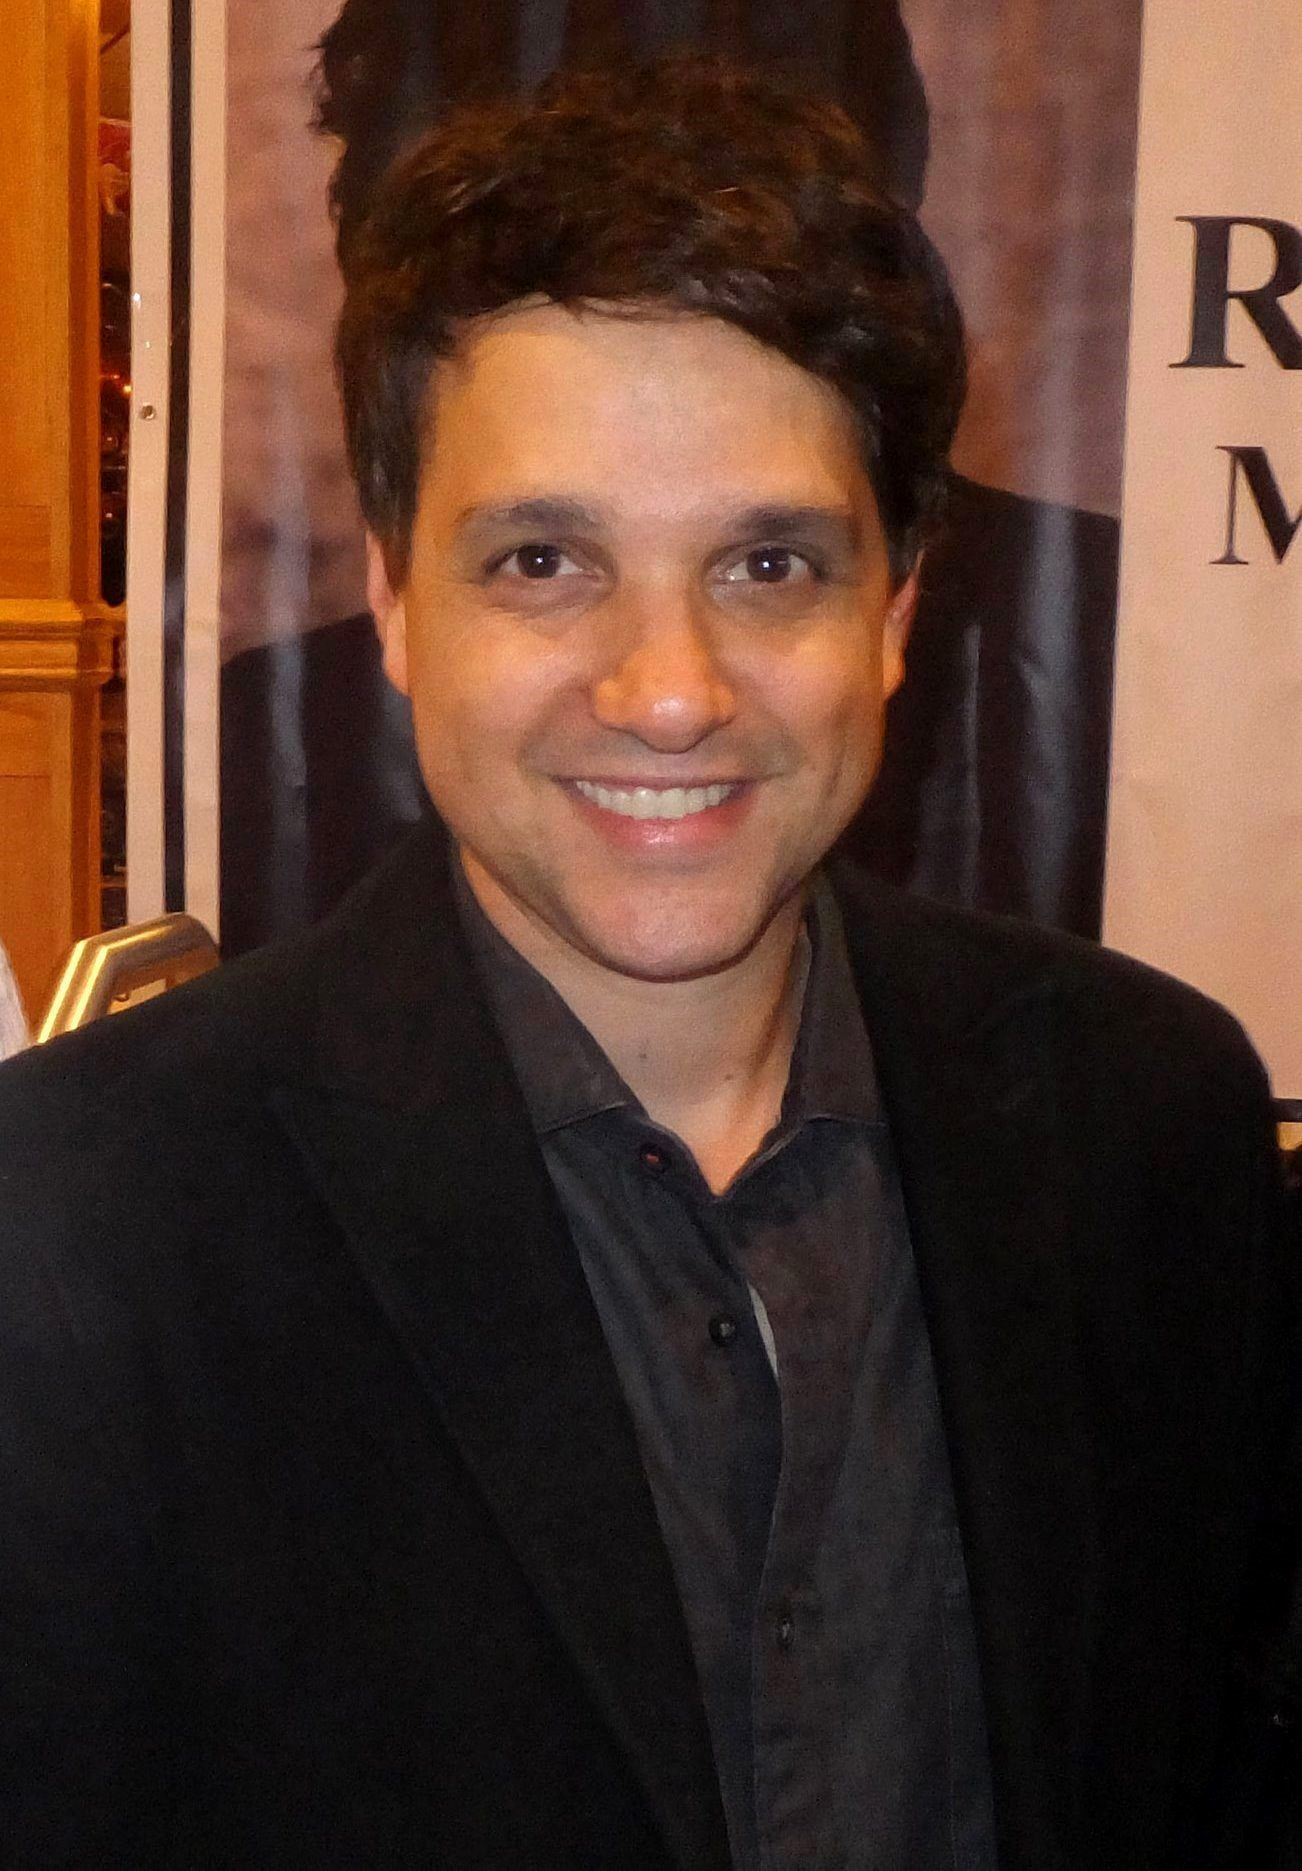 Http Commons Wikimedia Org Wiki File Ralph Macchio At The Chiller Theatre Expo In Nj October 26 2013 01 Jpg